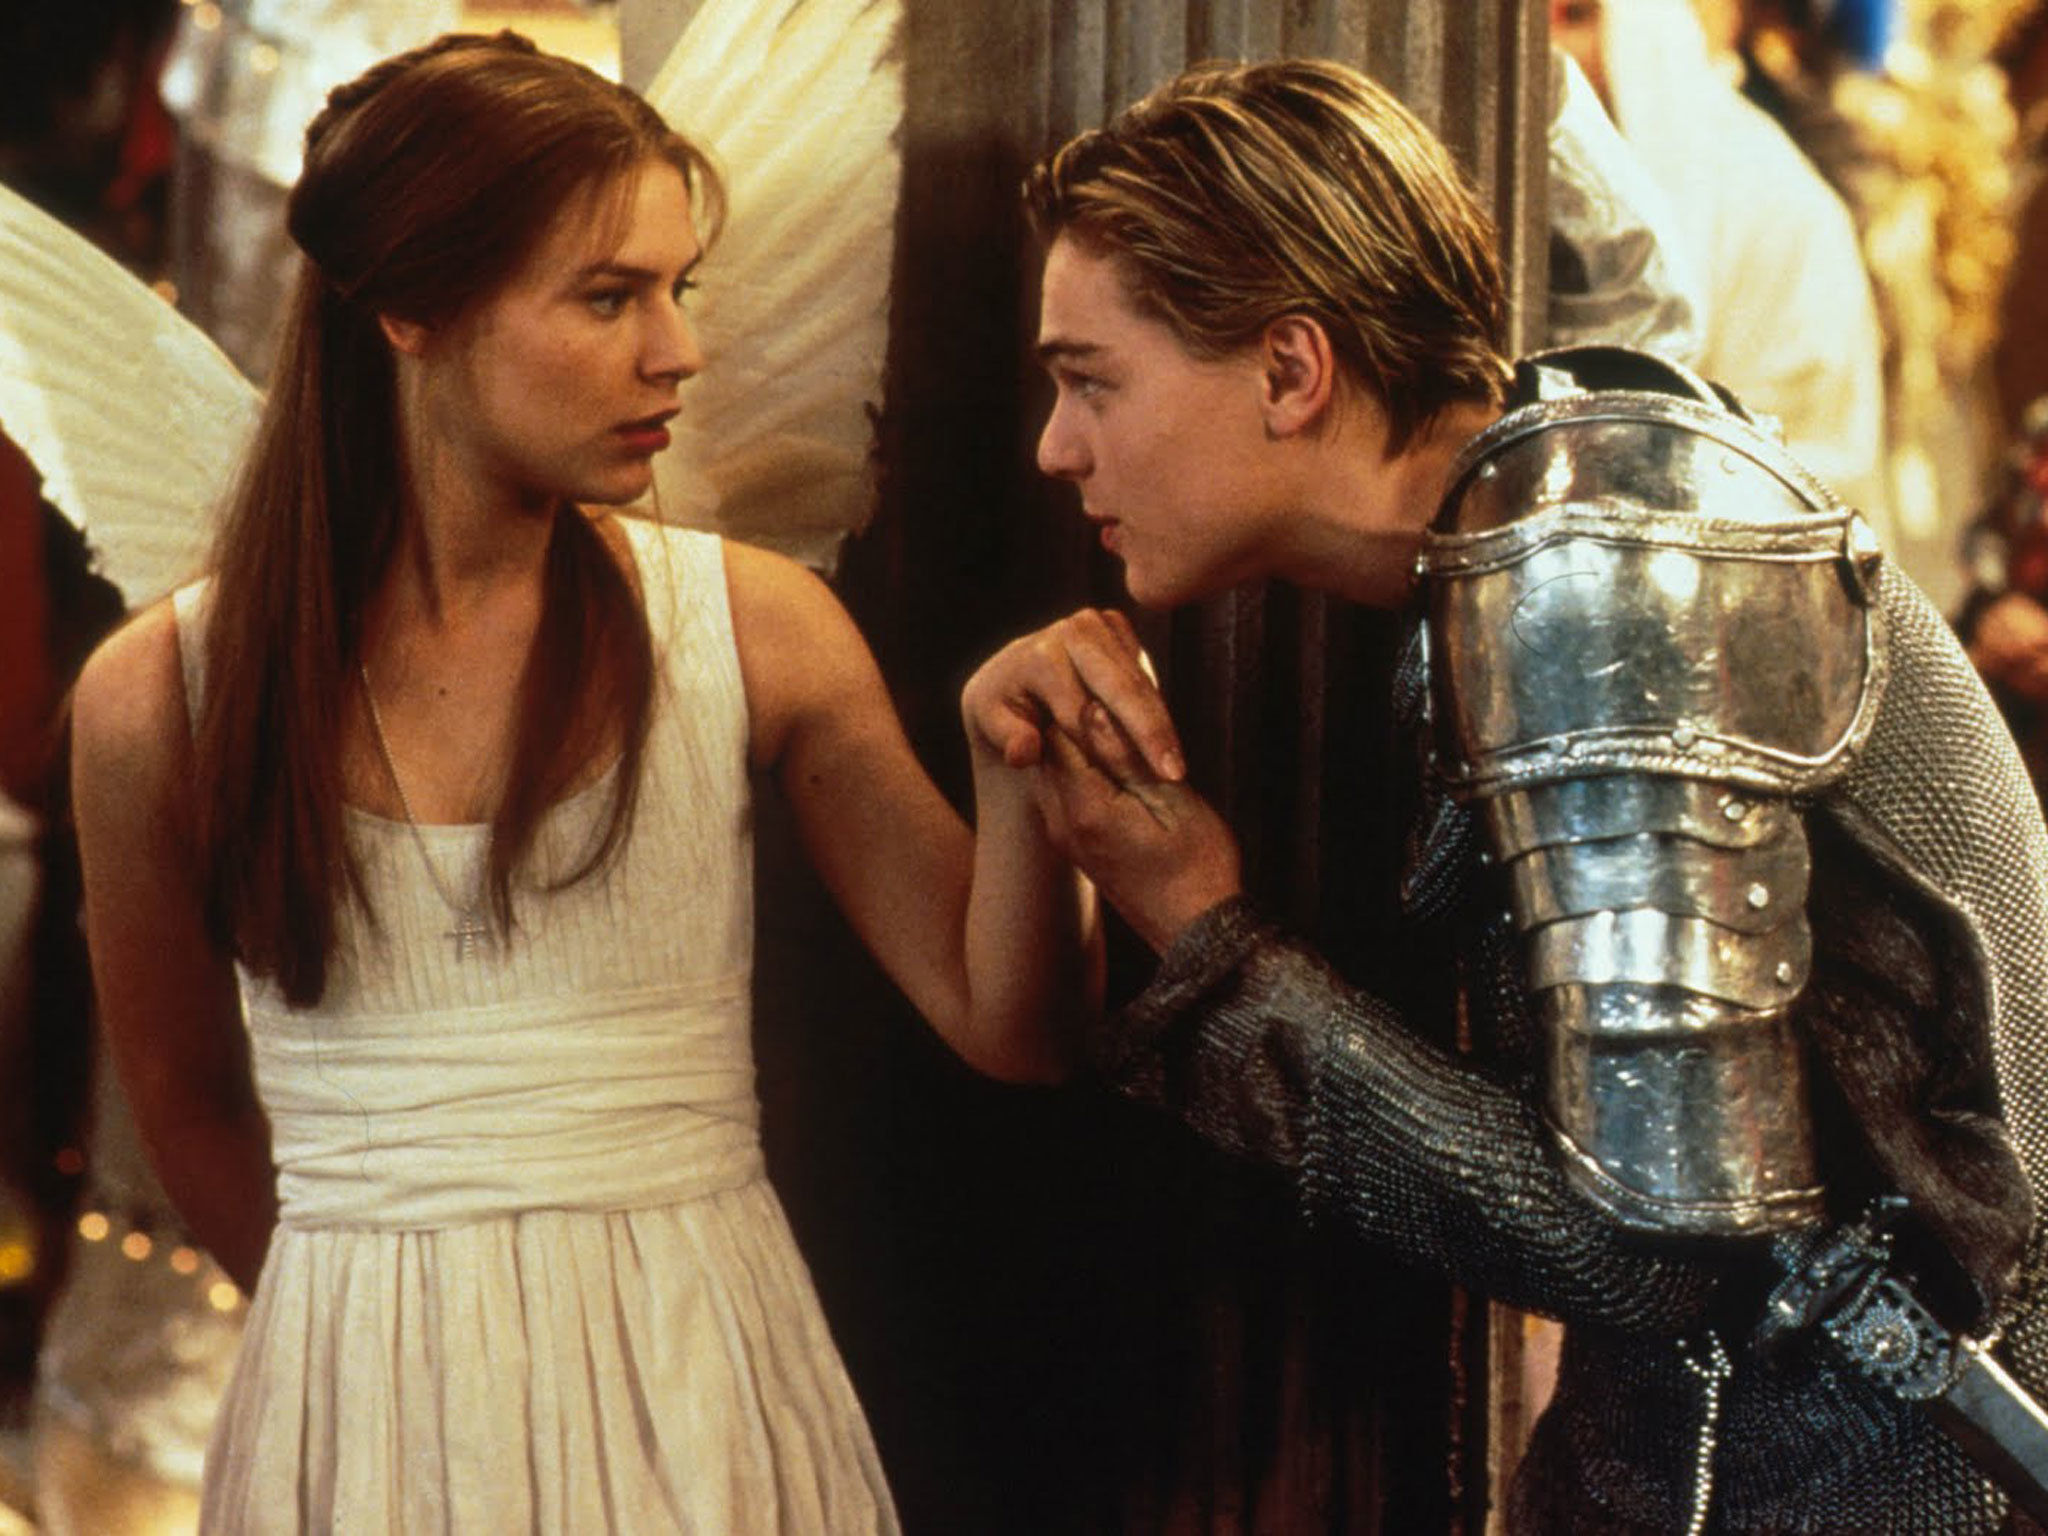 Watch the 100 best romantic movies